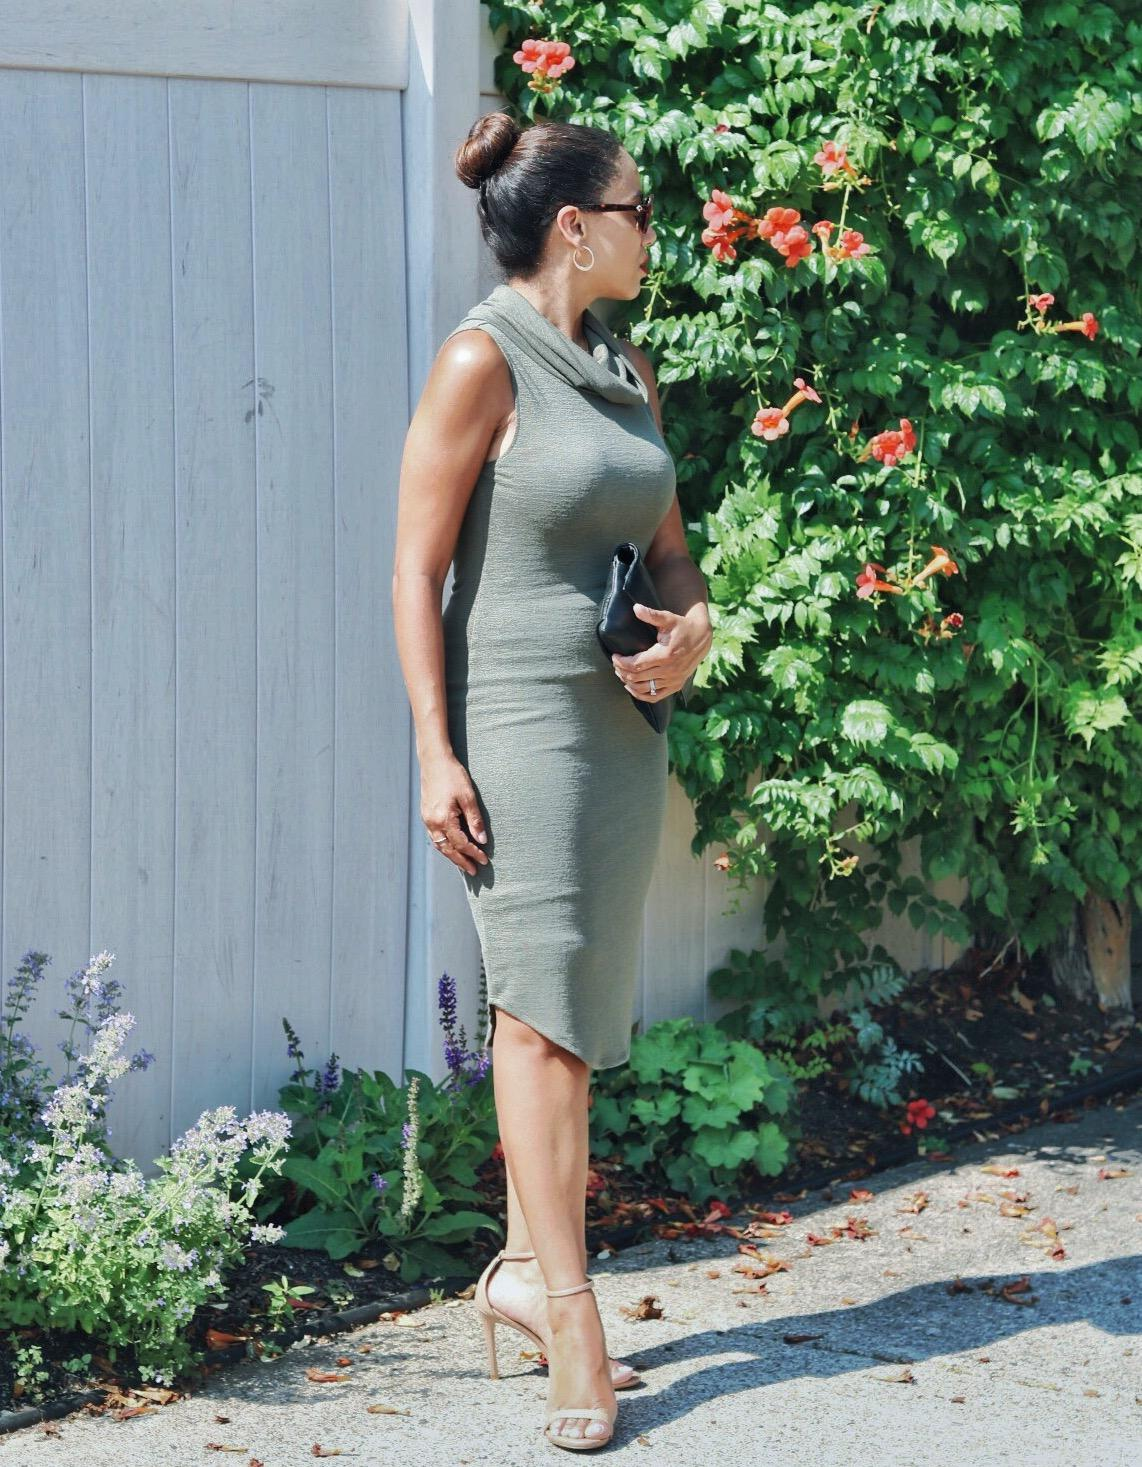 This Season's Gold // Olive sleeveless dress